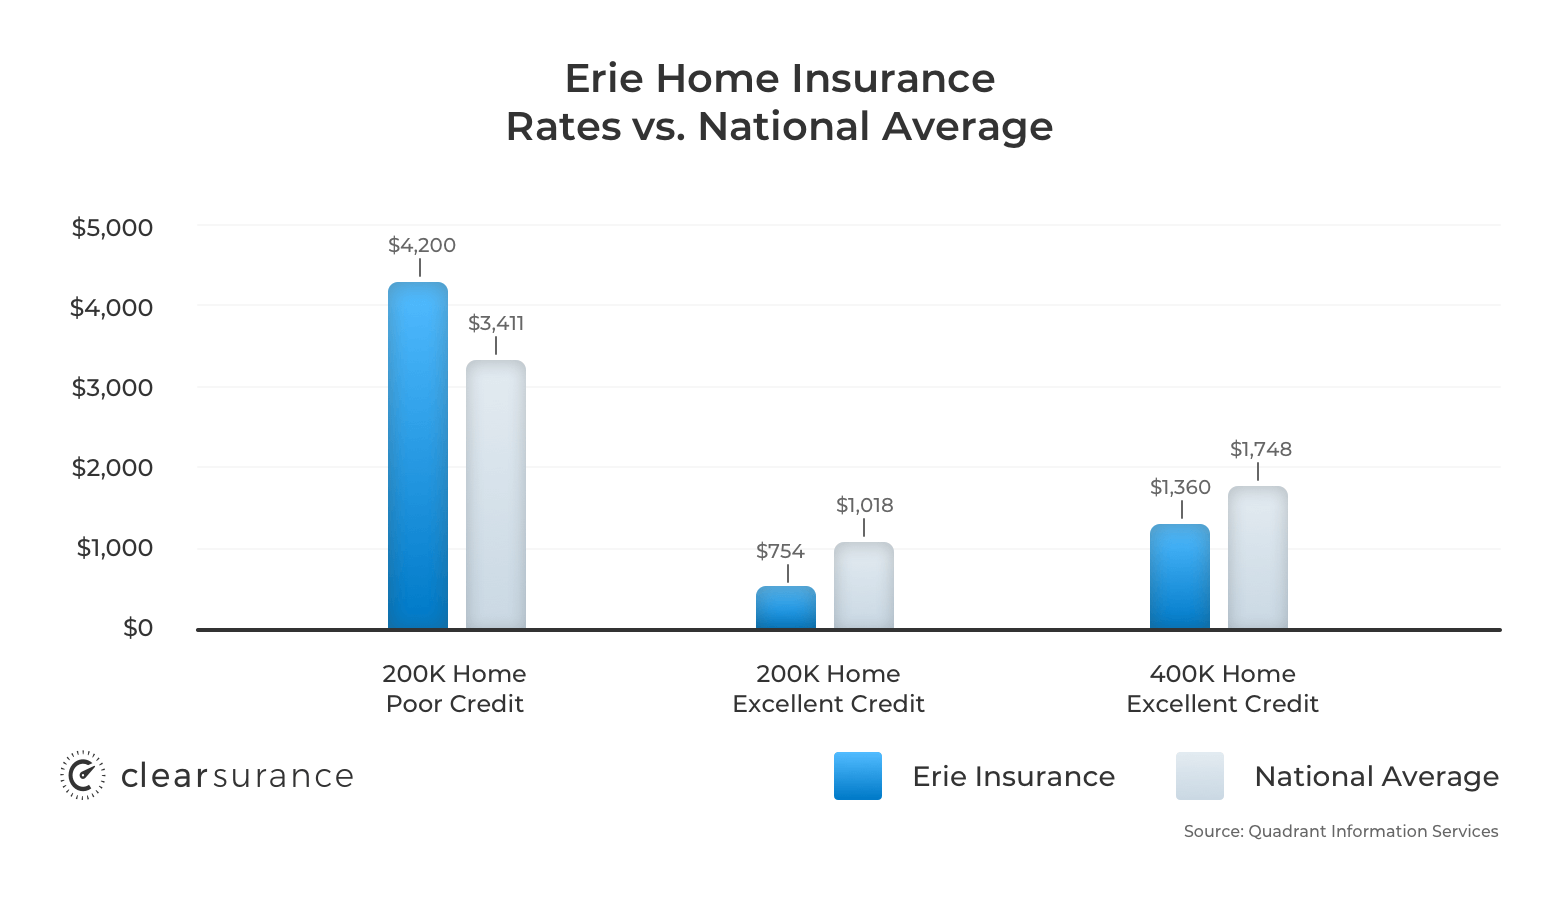 Erie home insurance rates